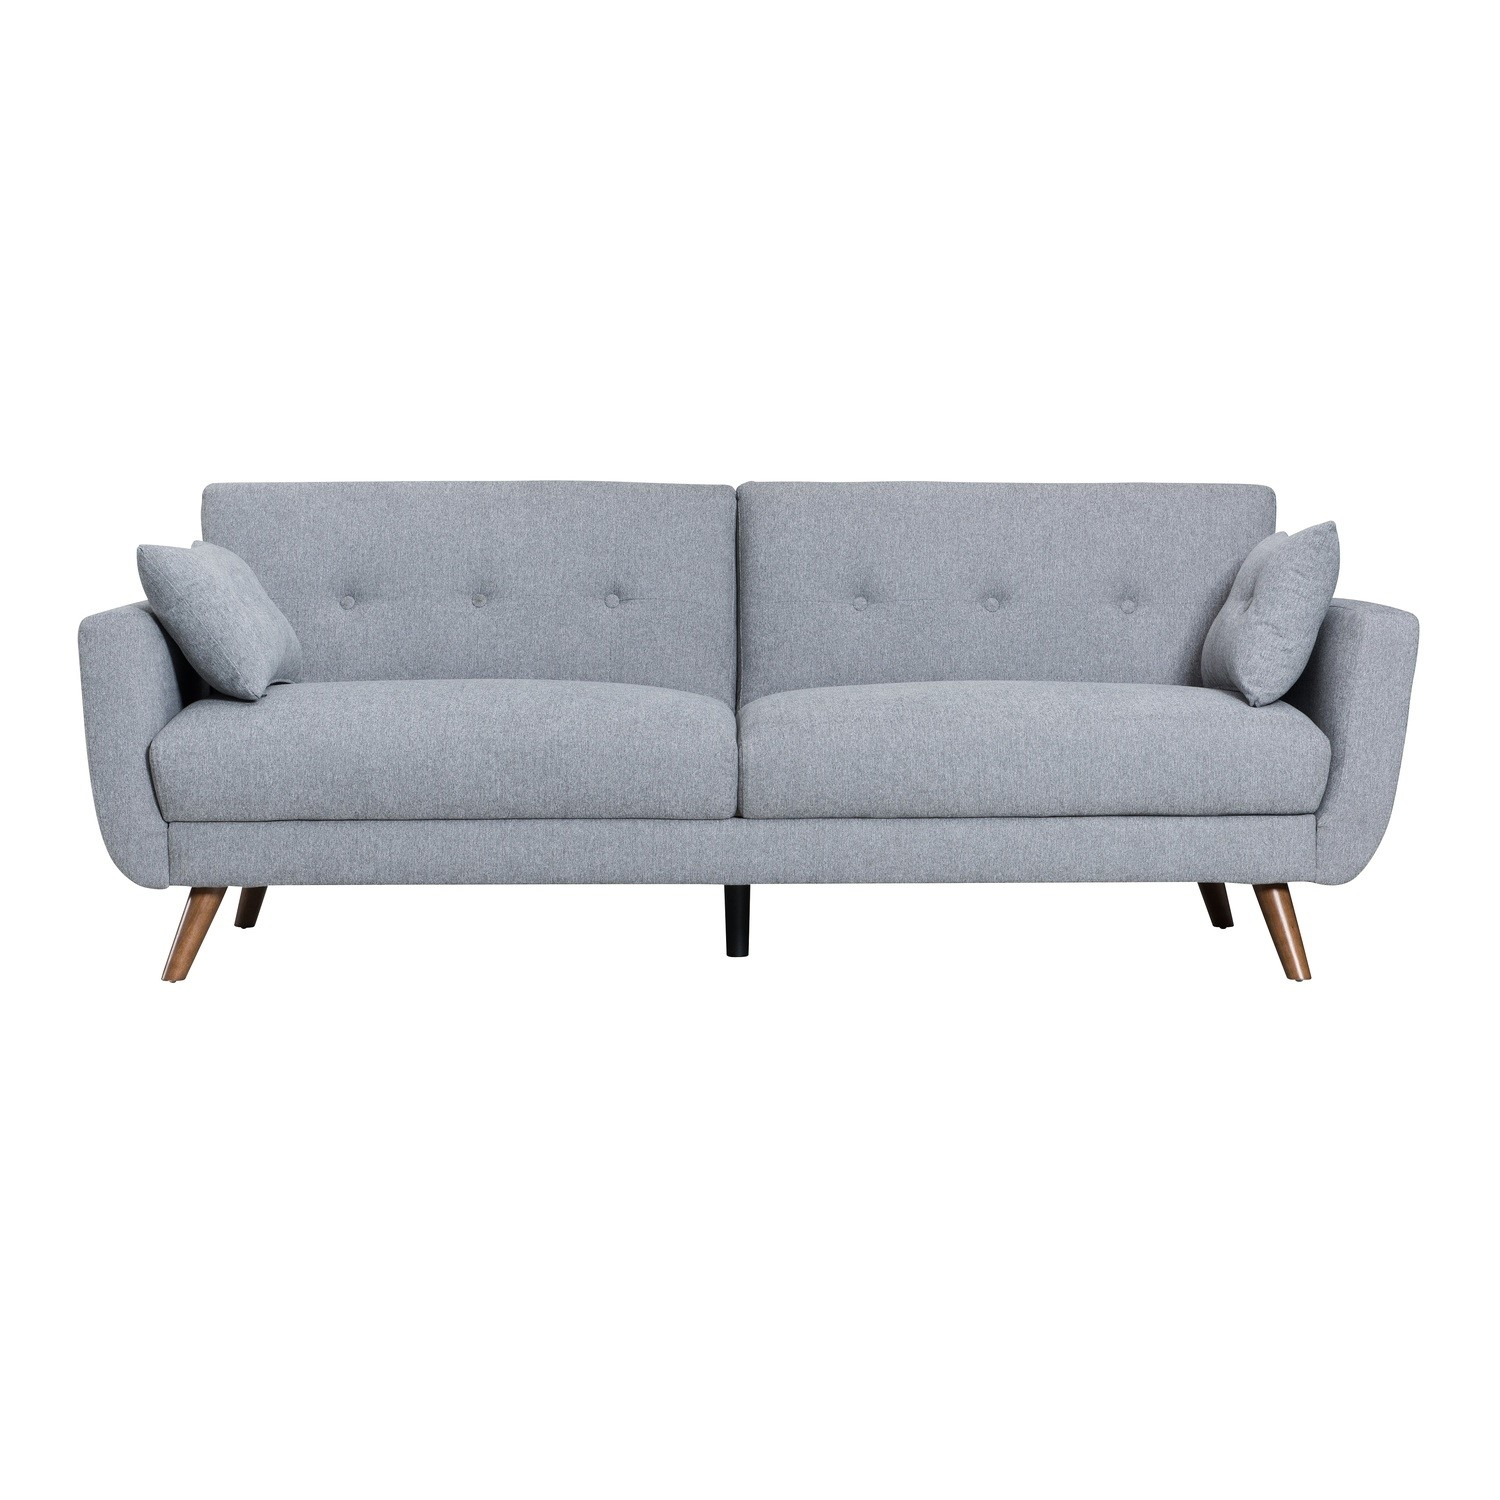 Picture of: Oslo 3 Seater Sofa Bed In Charcoal Grey Fabric Furniture123